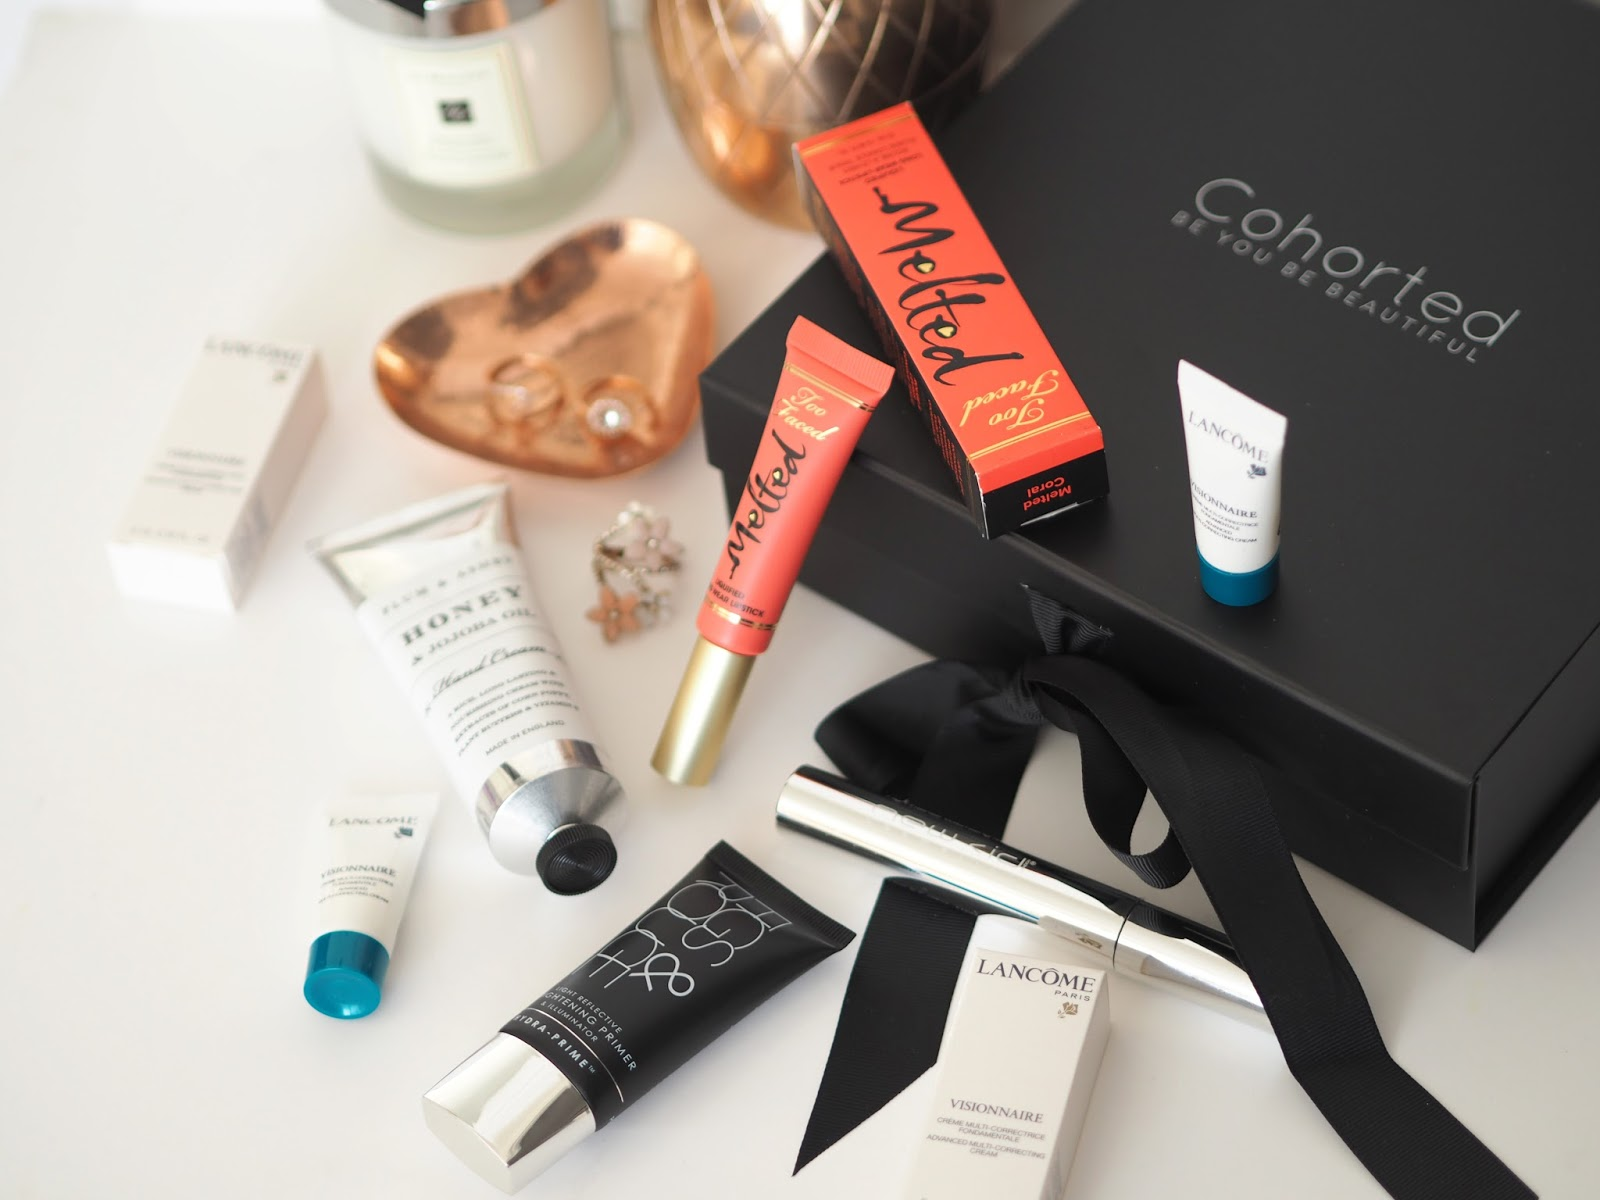 Cohorted Beauty Box: November Edition, Katie Kirk Loves, UK Blogger, Beauty Blogger, Beauty Box, High End Beauty, Luxury Beauty, Beauty Influencer, Make Up Blogger, Skincare Blogger, Cohorted UK, Cohorted Beauty Box Review, Too Faced, Lancome, Figs and Rouge, New CID, Plum and Ashby